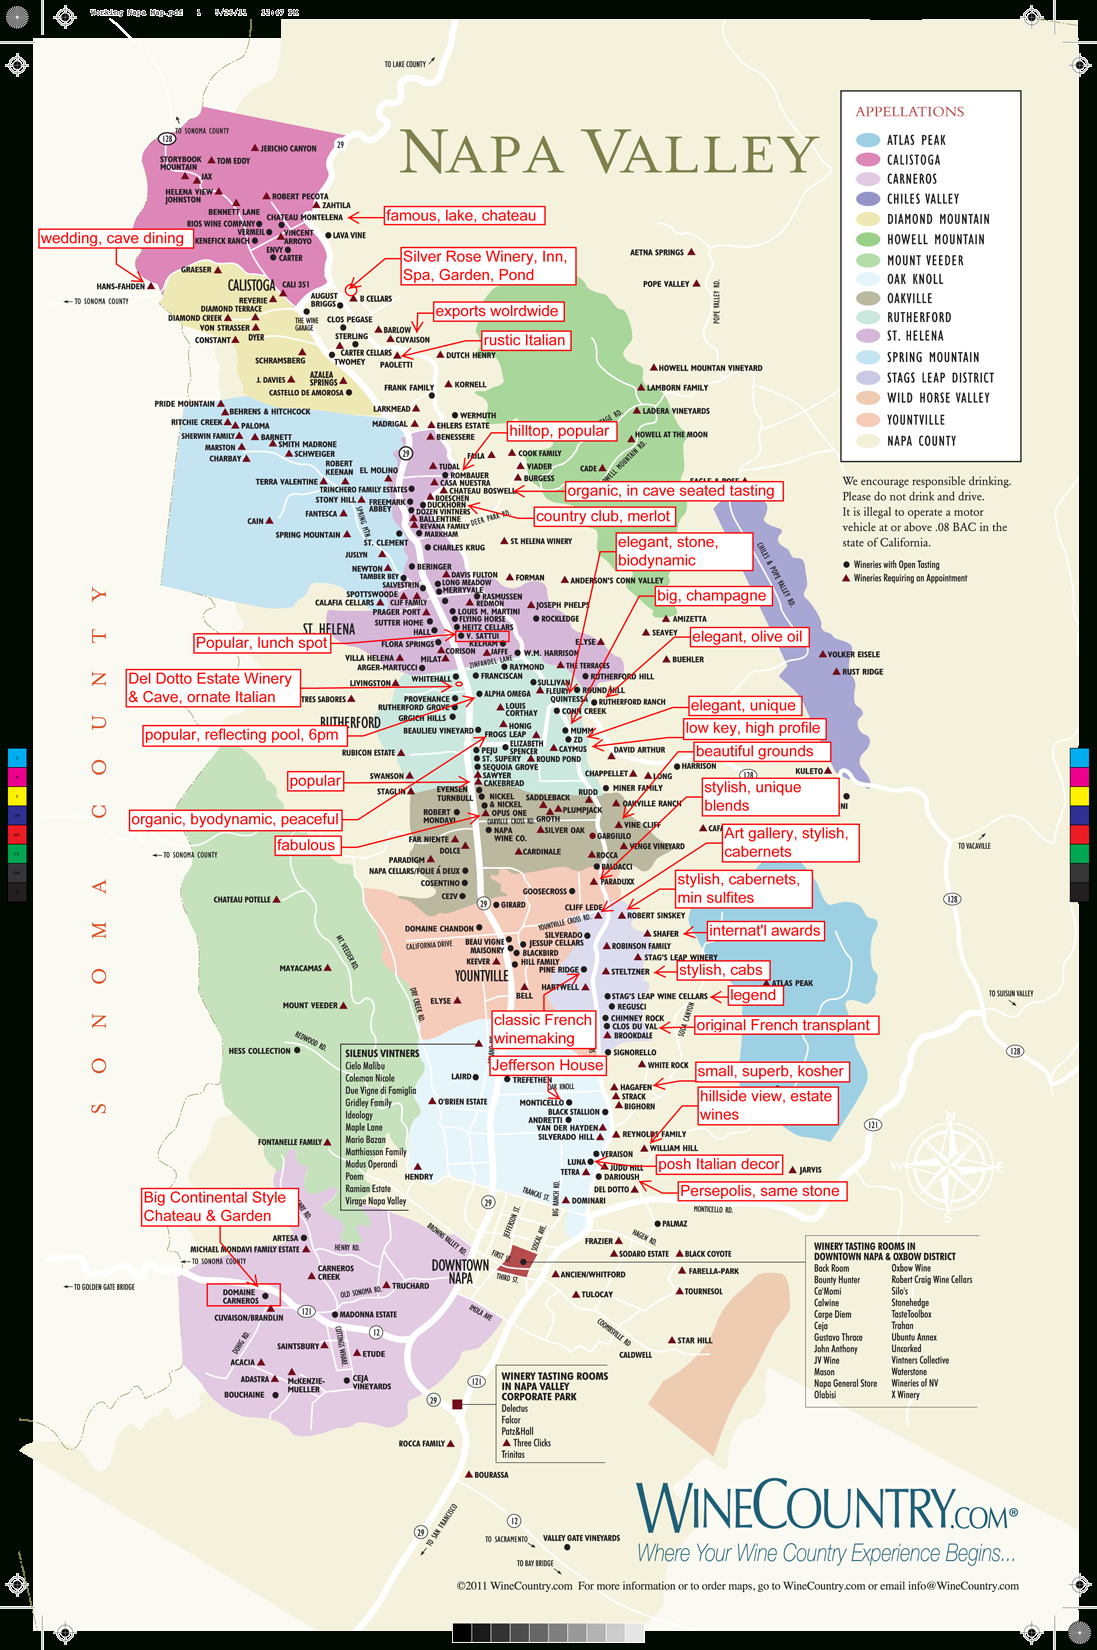 Do You Think You Could All Wineries In One Lifetime? We're Thinking - Printable Napa Winery Map